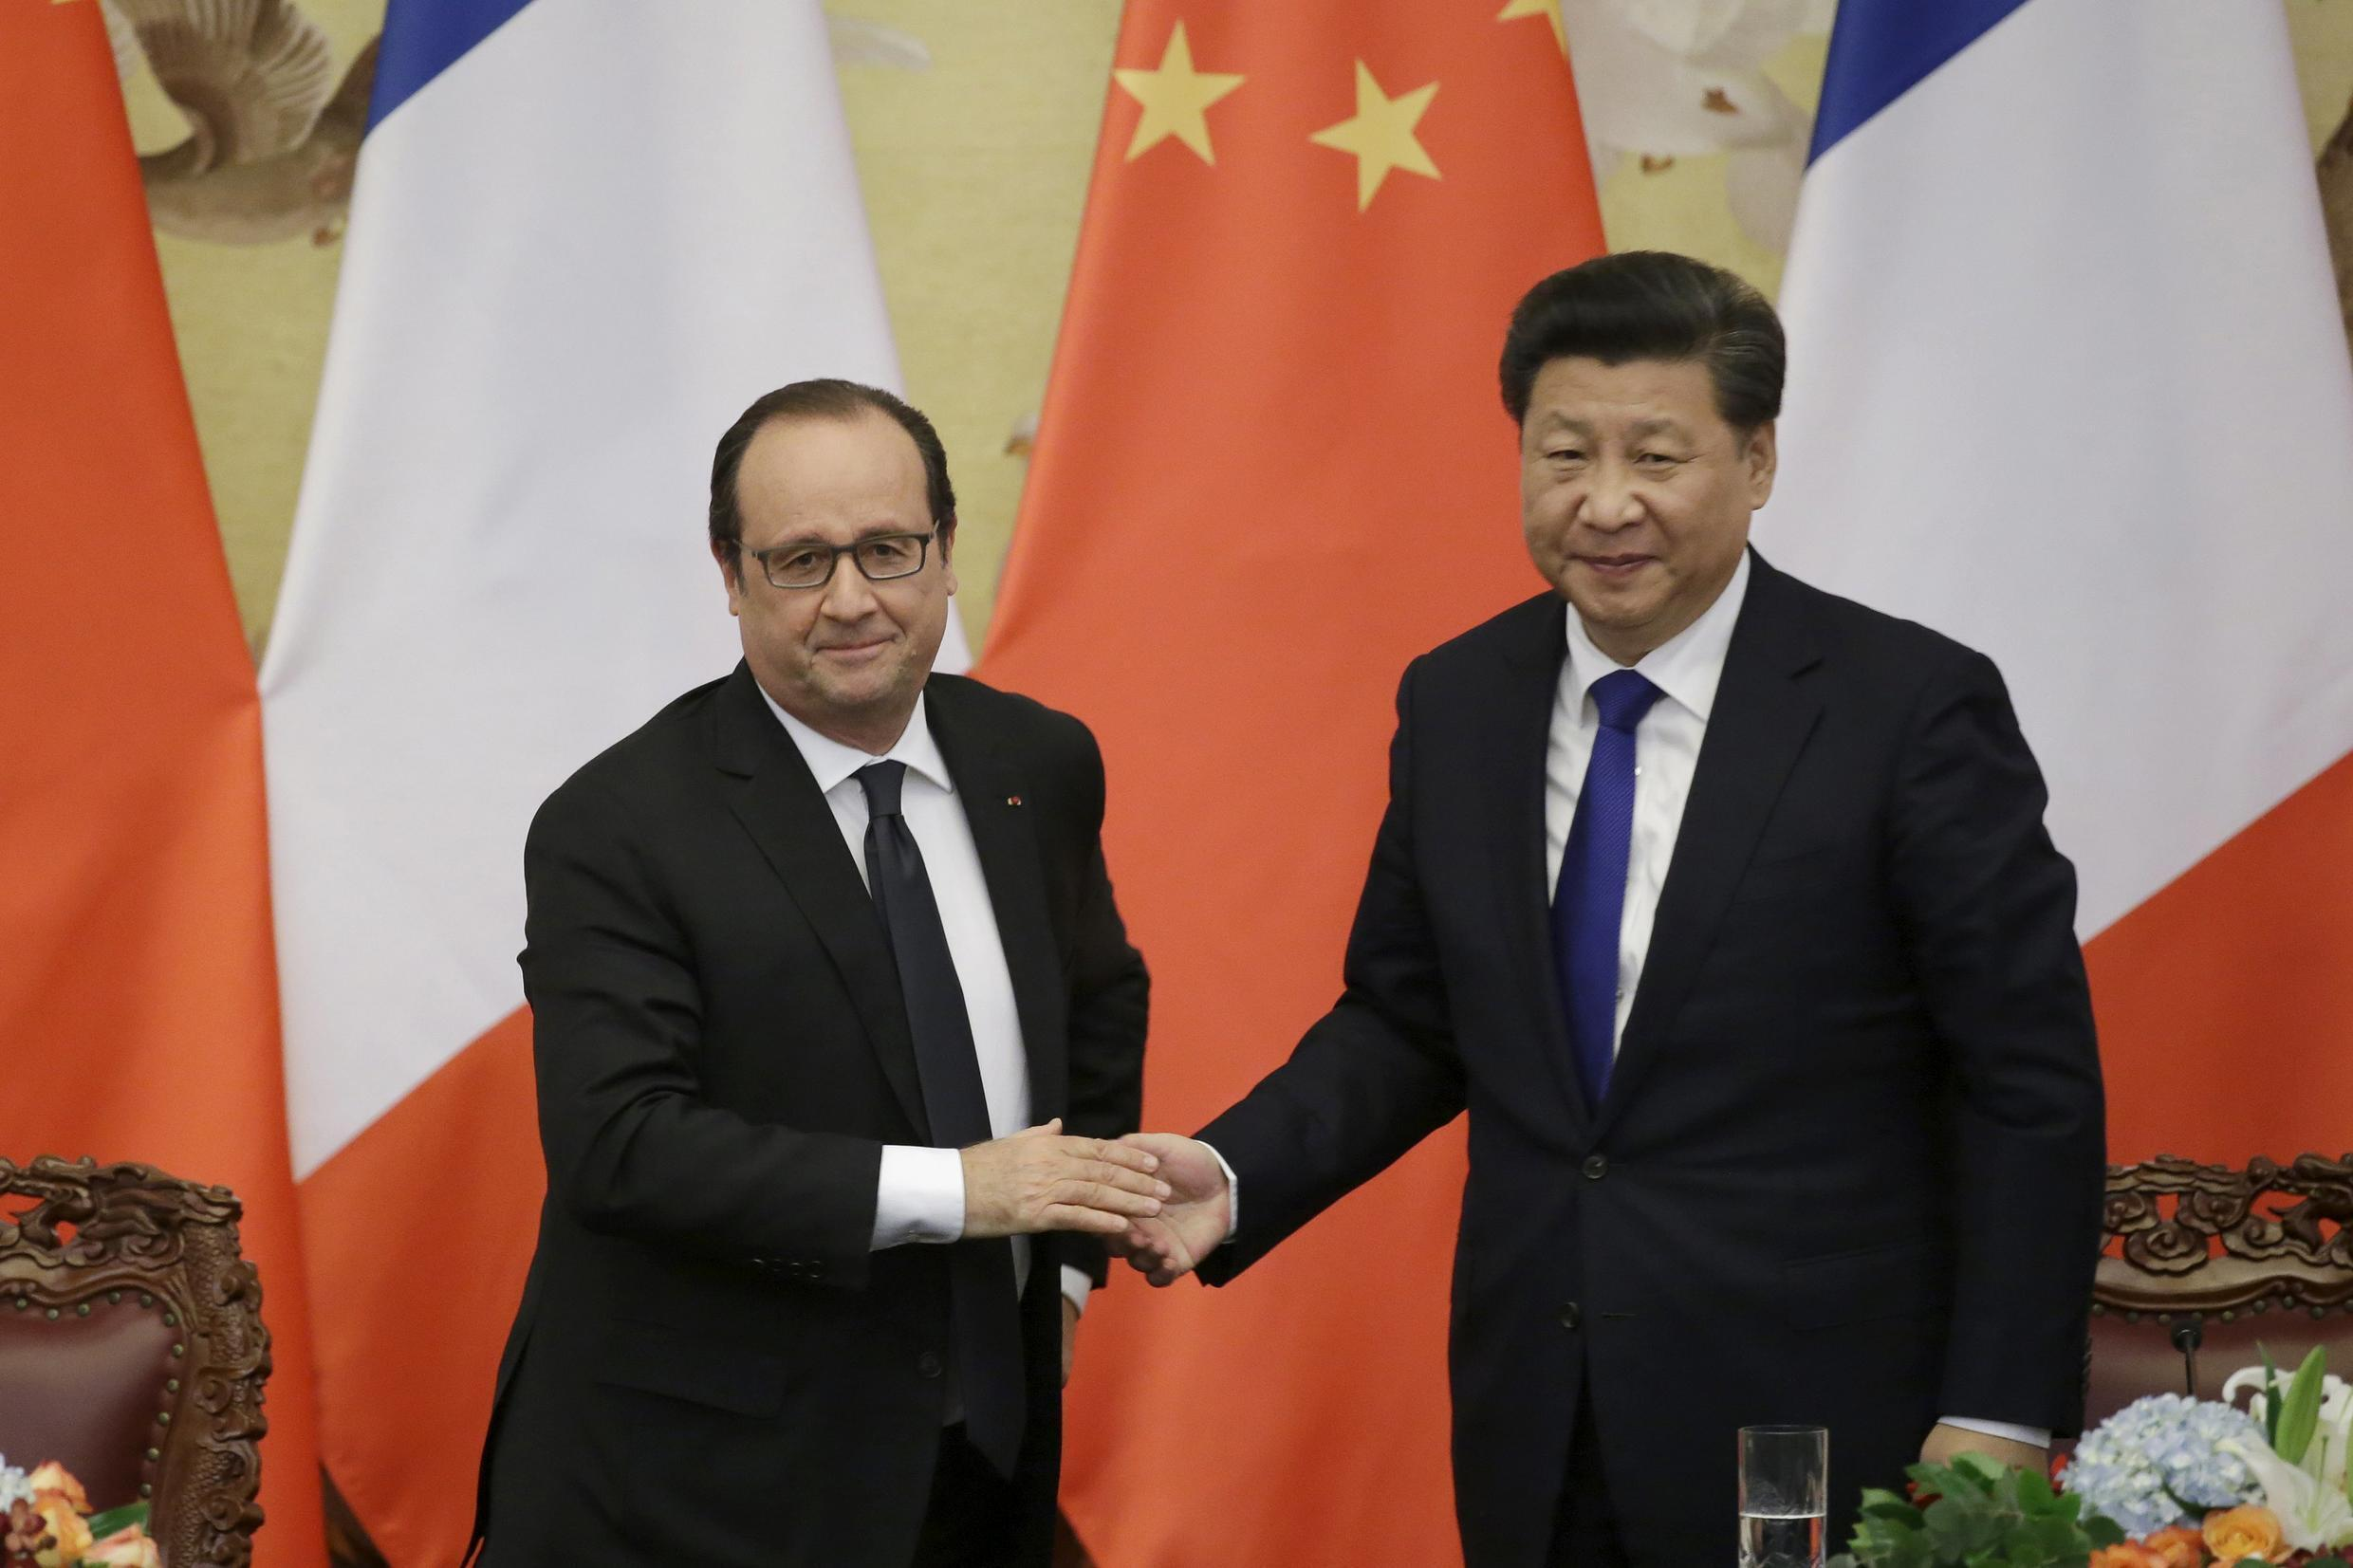 France's President Francois Hollande with his Chinese counterpart Xi Jinping